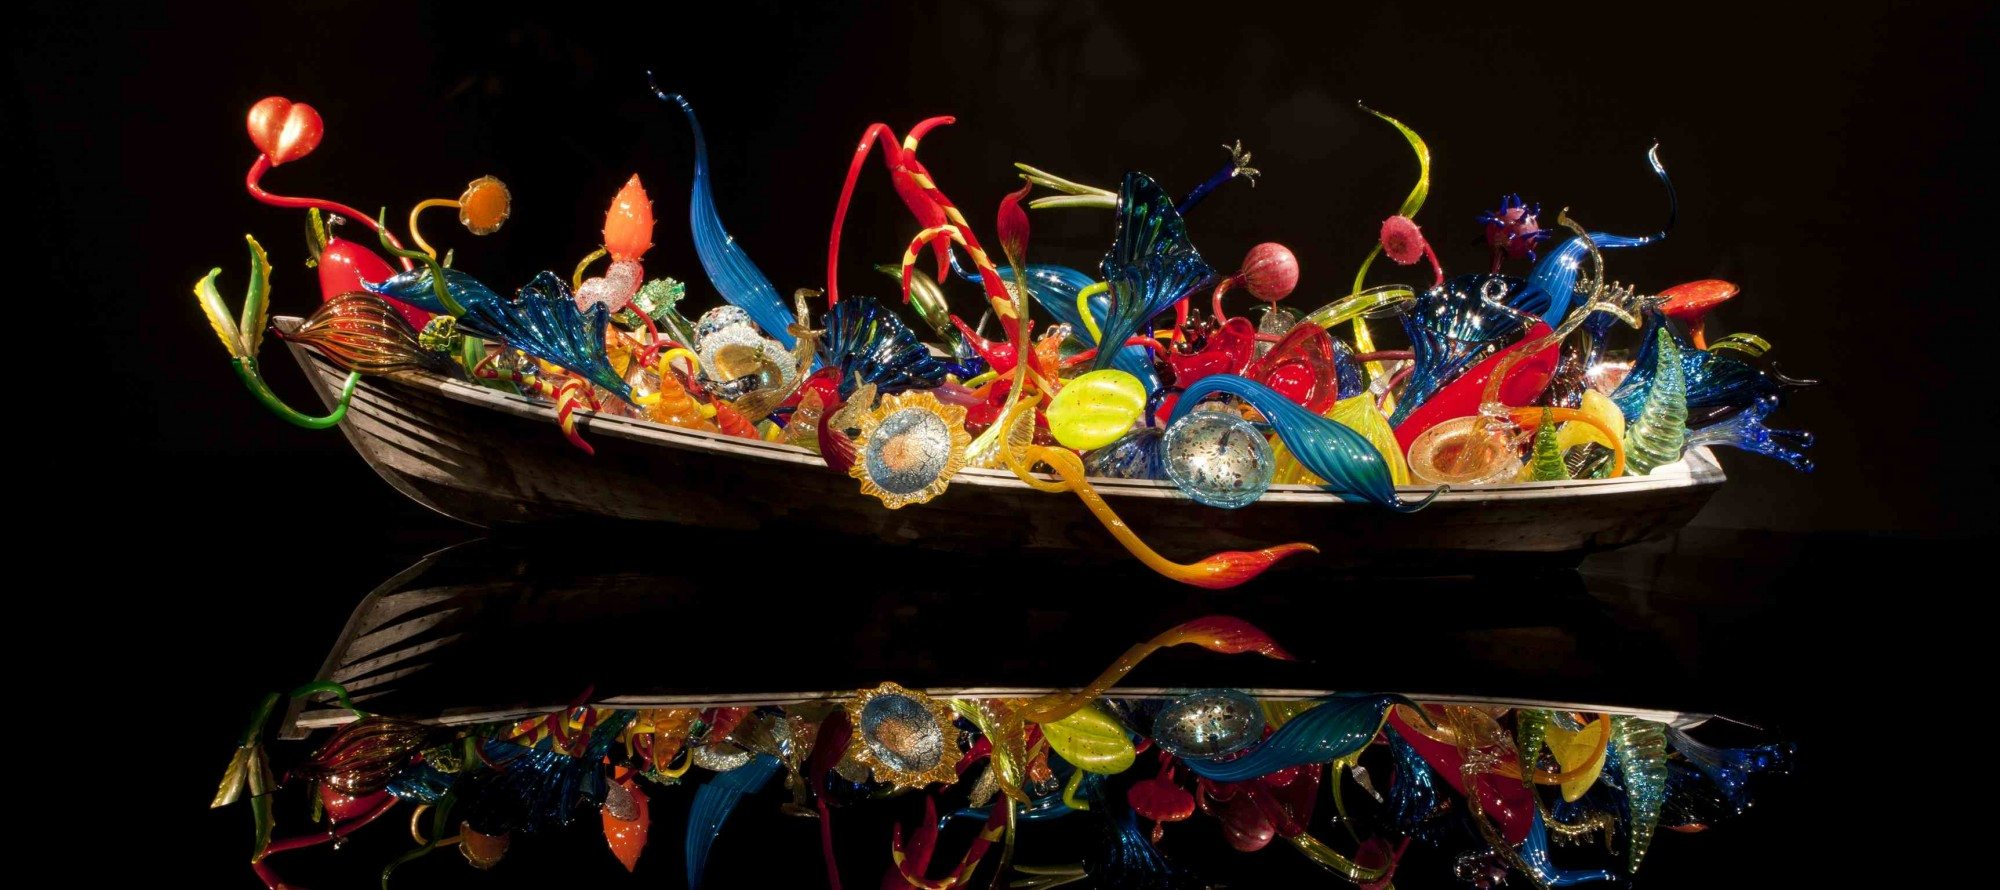 ROAD TRIP! Liberace would have loved this exhibition of Dale Chihuly glass sculptures